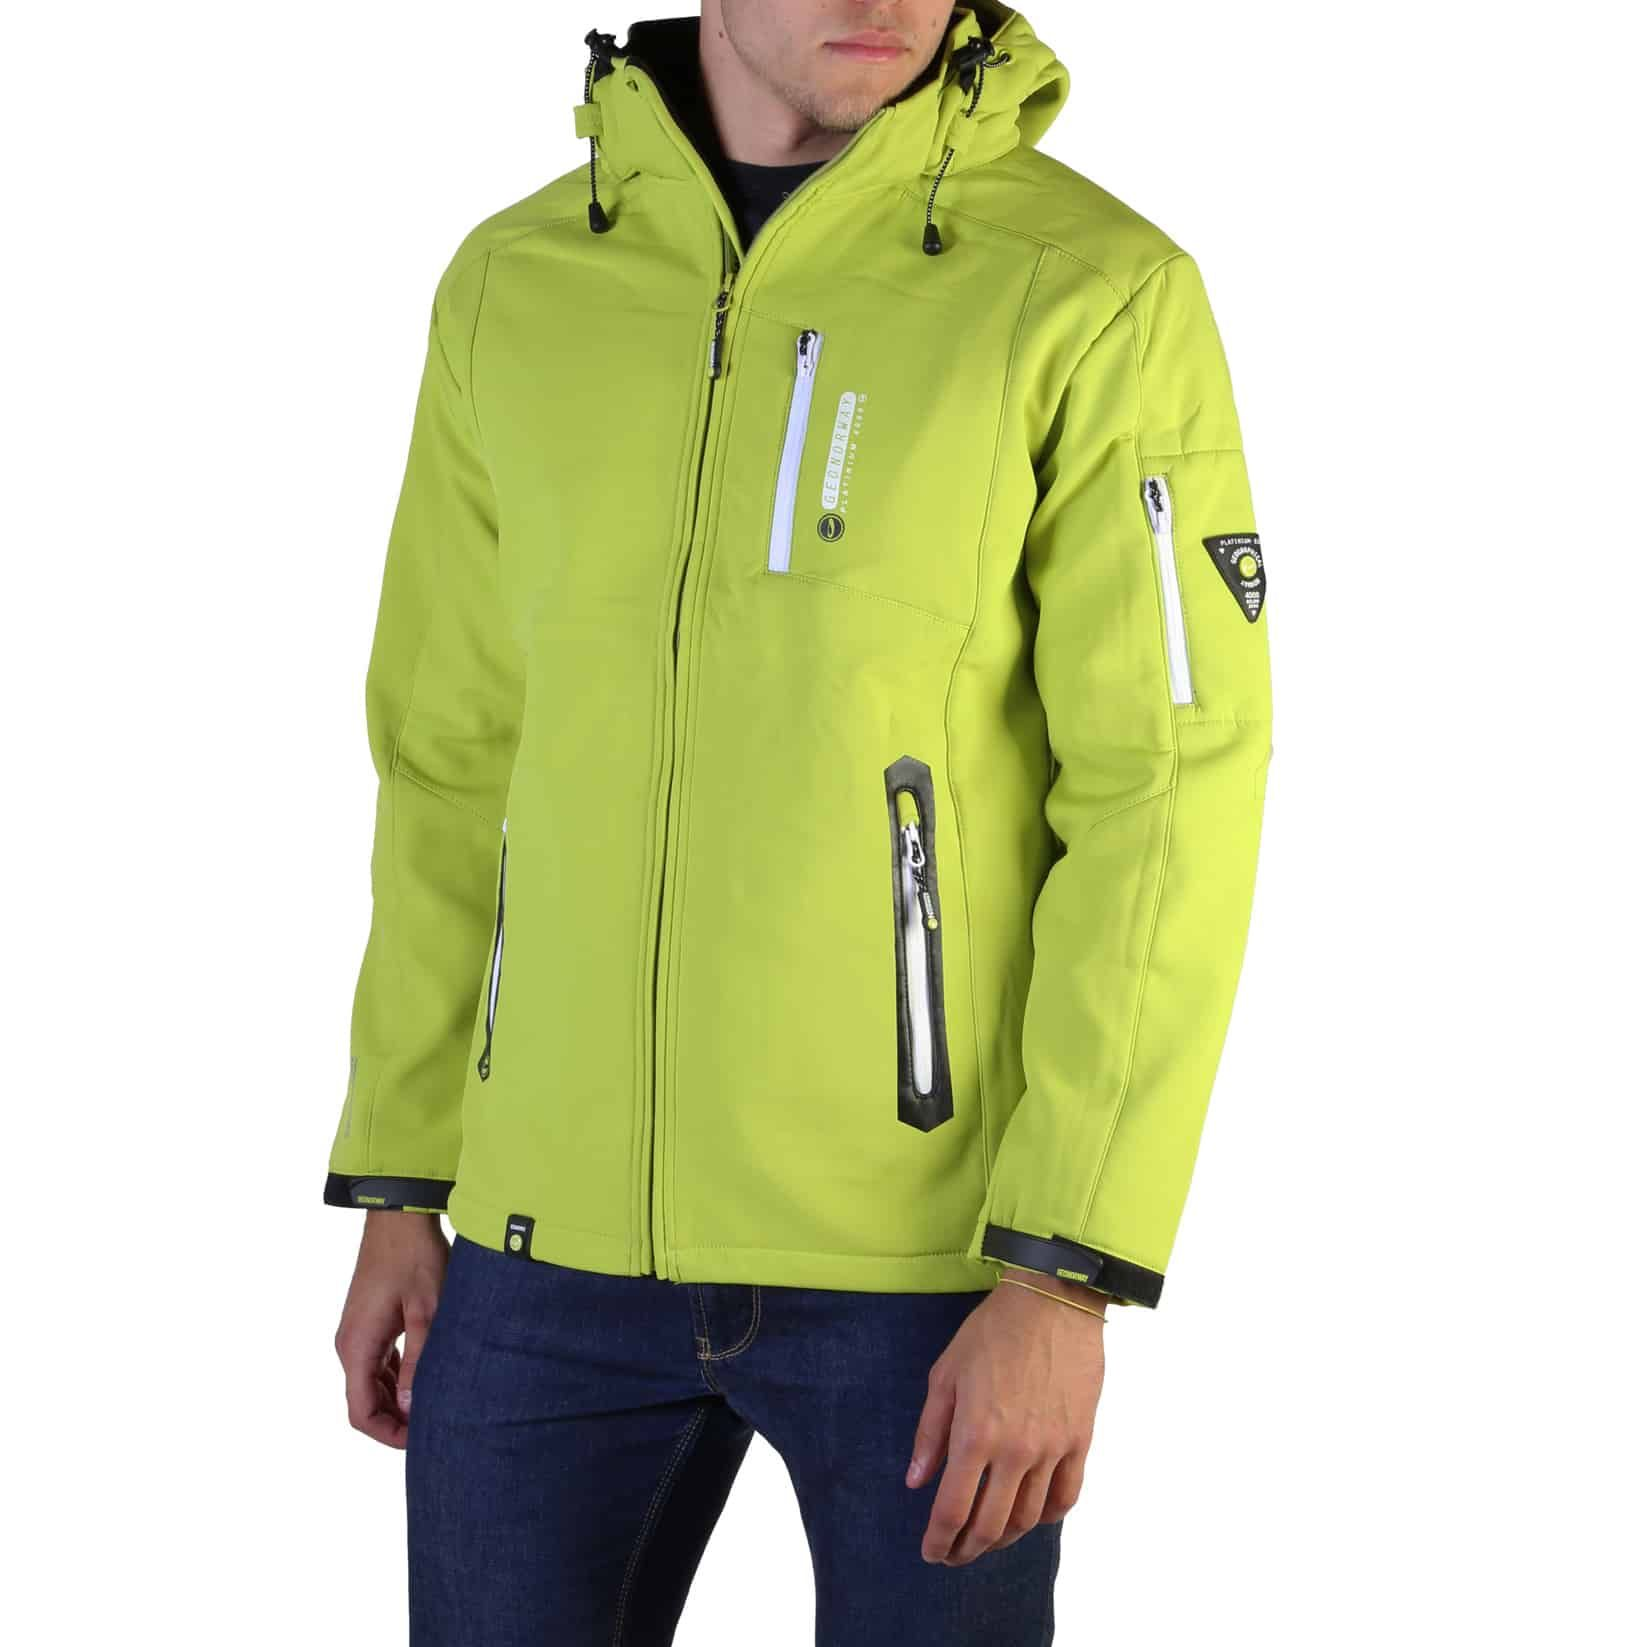 Vestes Geographical Norway – Tichri_man